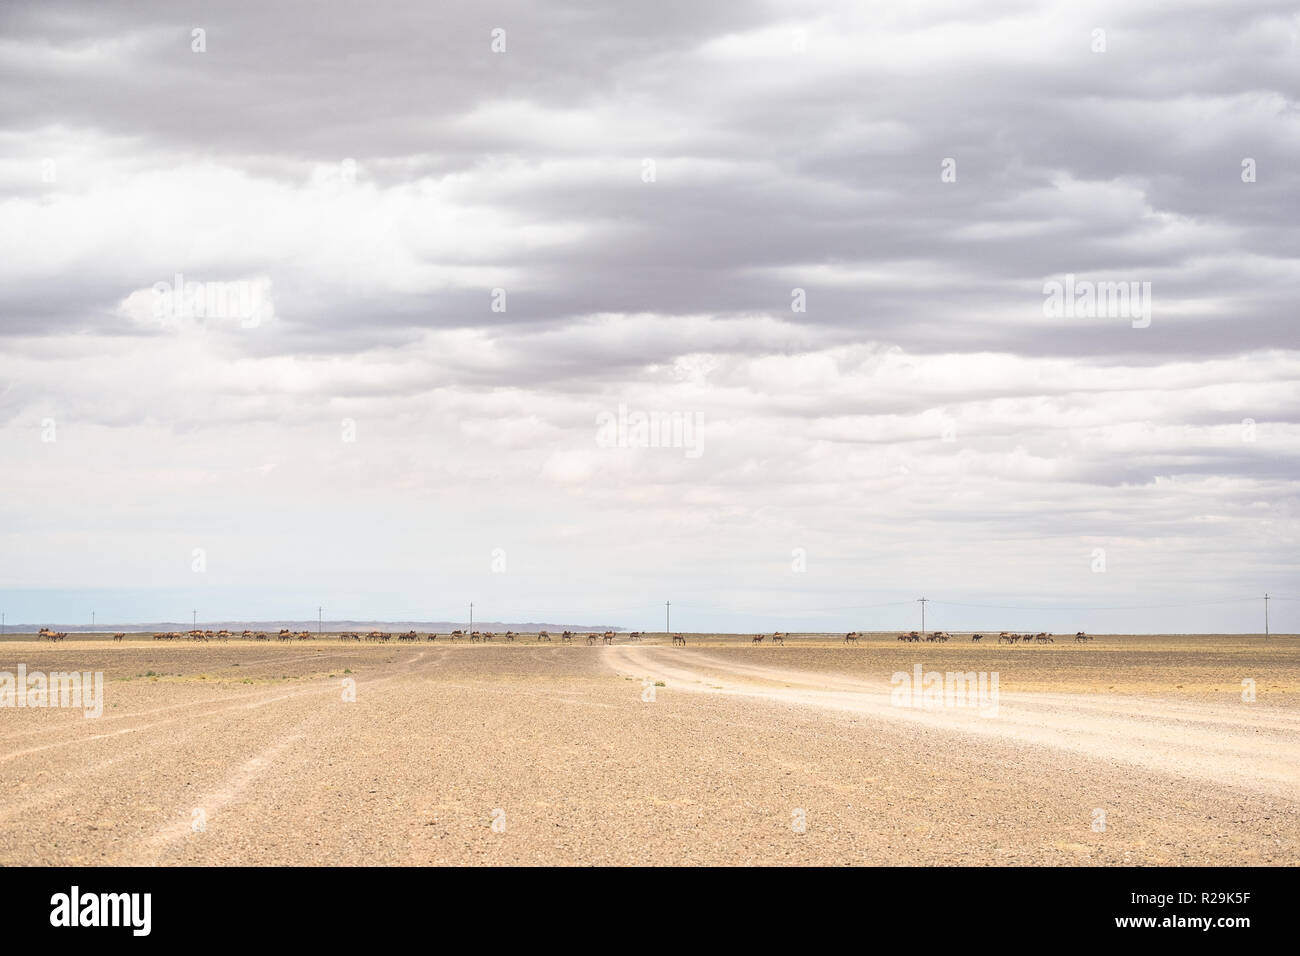 Faraway view of endless herd of Bactrian camels on the move in the vast Gobi desert landscape. - Stock Image